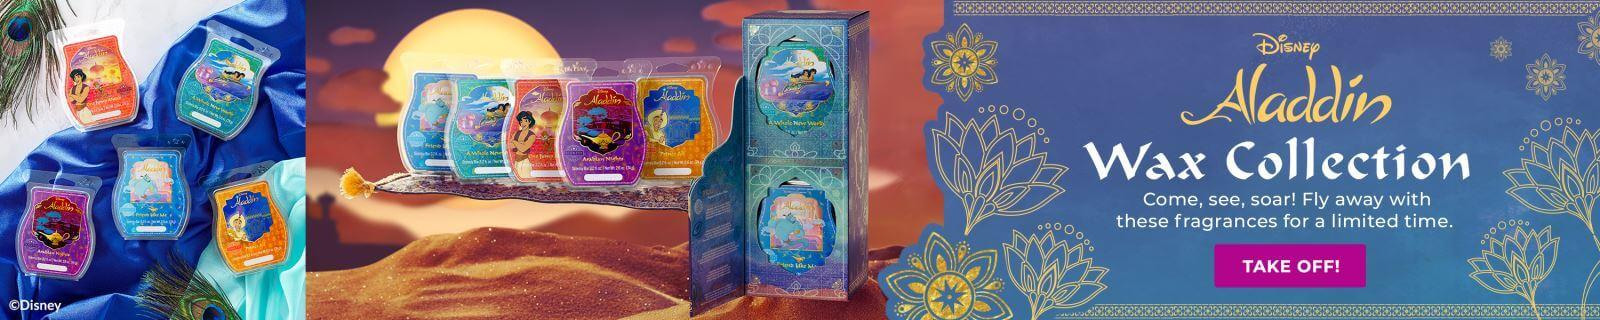 ALADDIN SCENTSY WAX COLLECTION